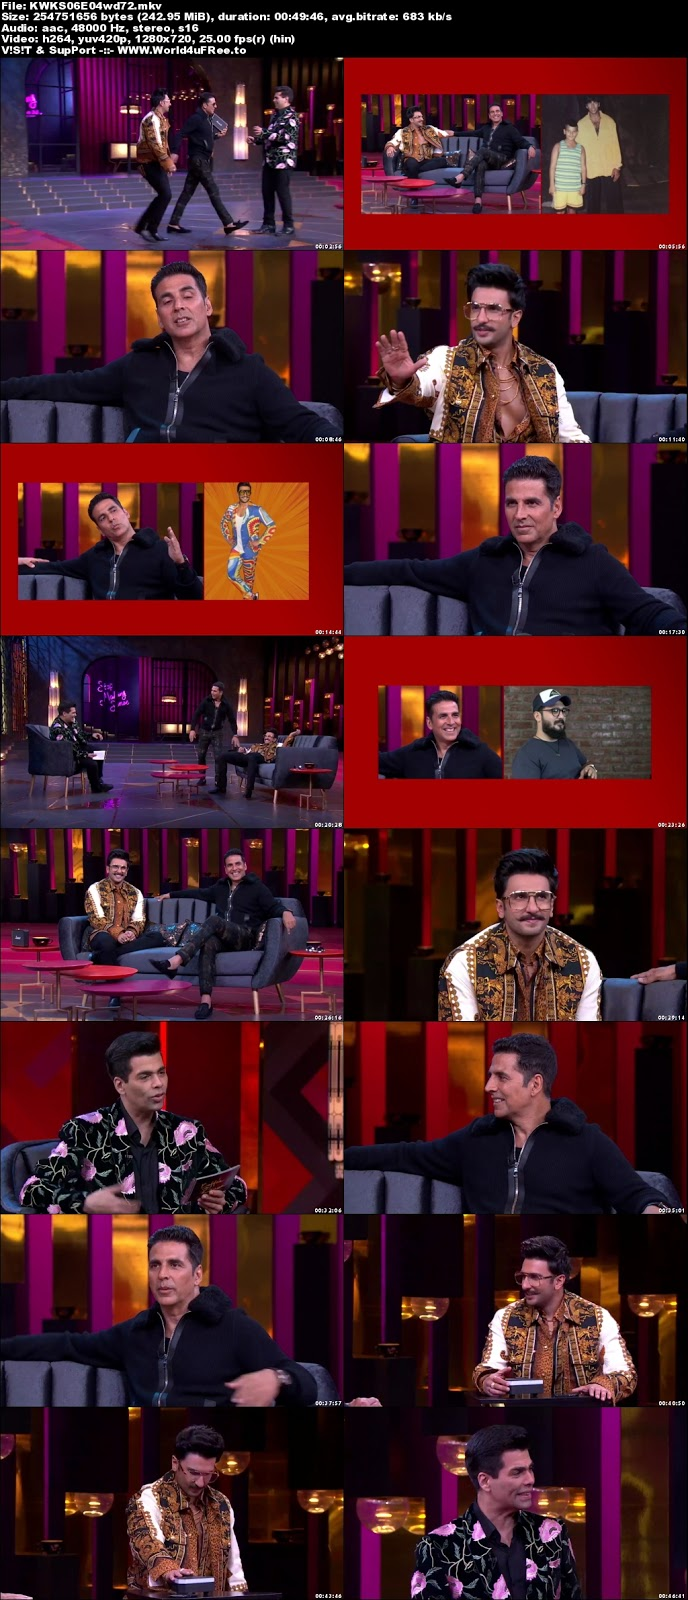 Koffee With Karan S06 28 October 2018 720p WEBRip 250mb x264 world4ufree.vip tv show Koffee With Karan Season 6 Star World tv show HD 720p free download or watch online at world4ufree.vip